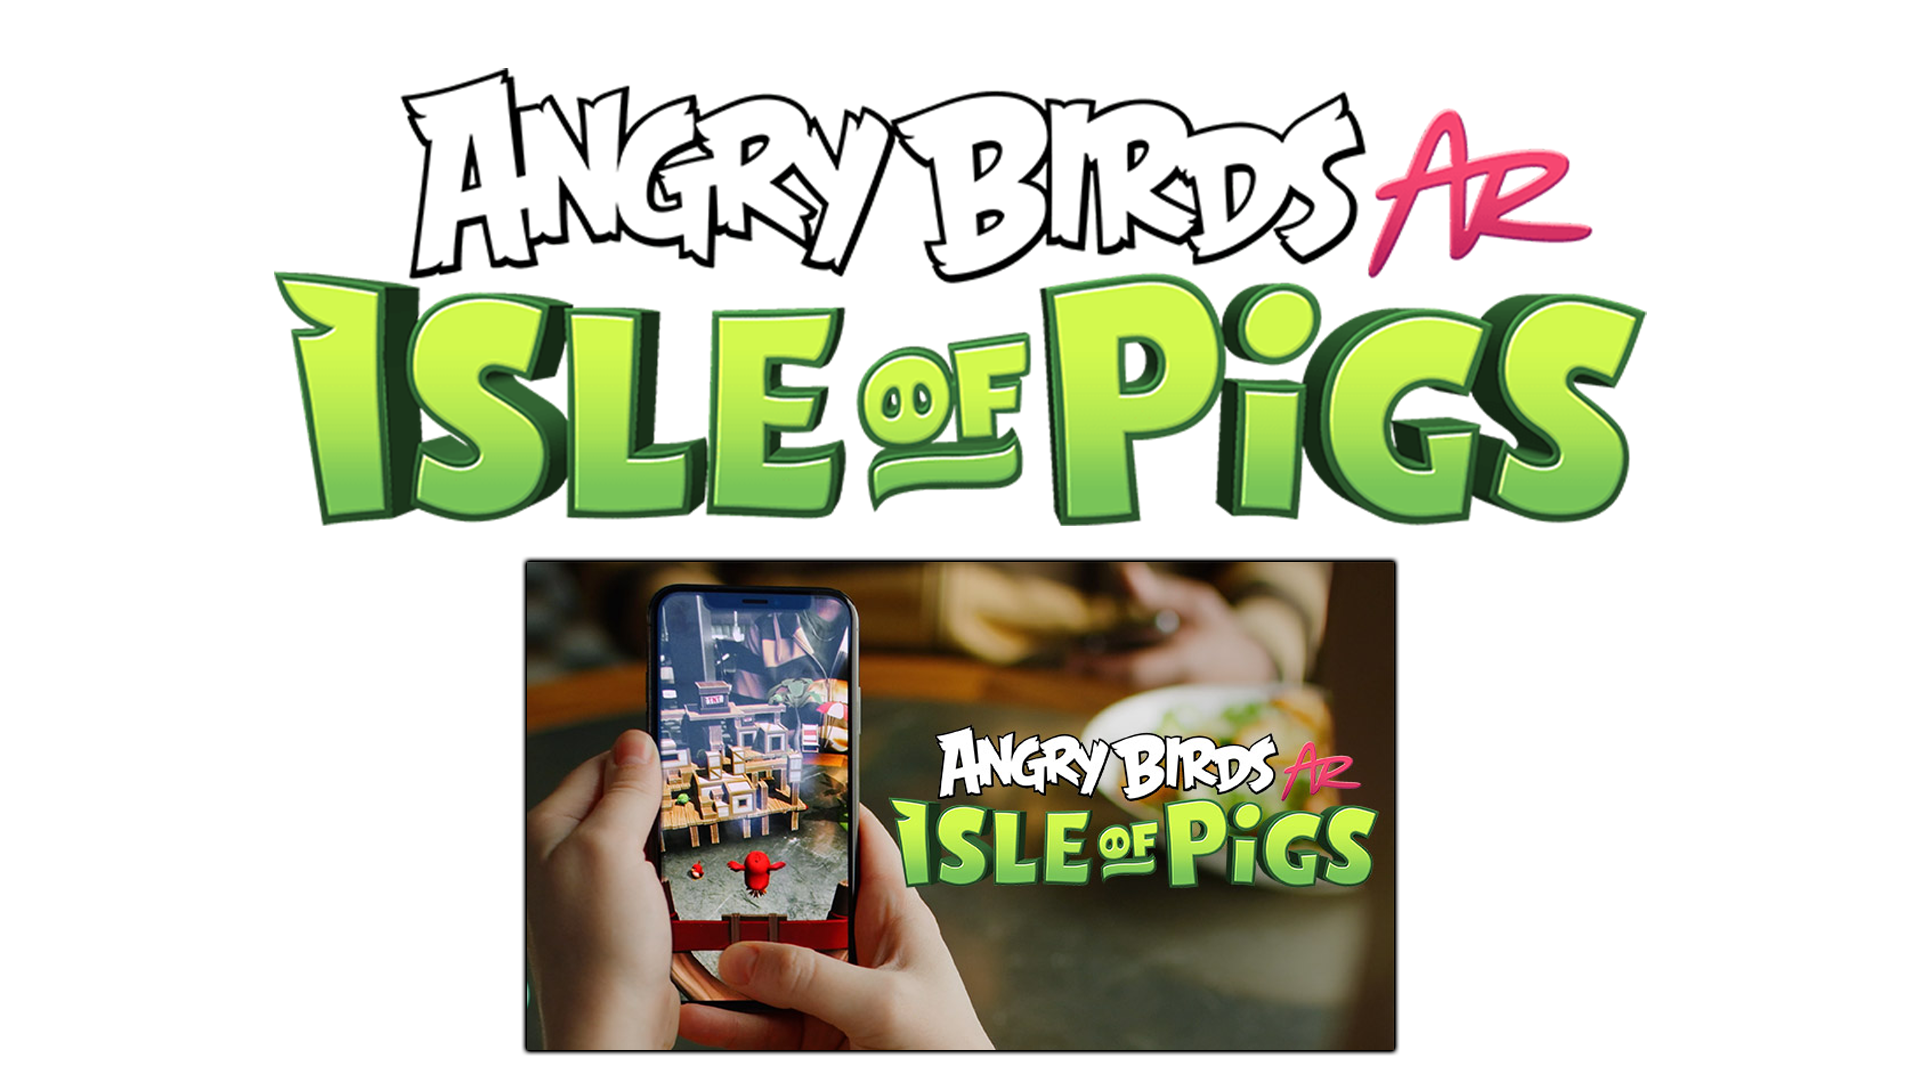 The Angry Birds AR logo with a screenshot of the Angry Birds AR game.